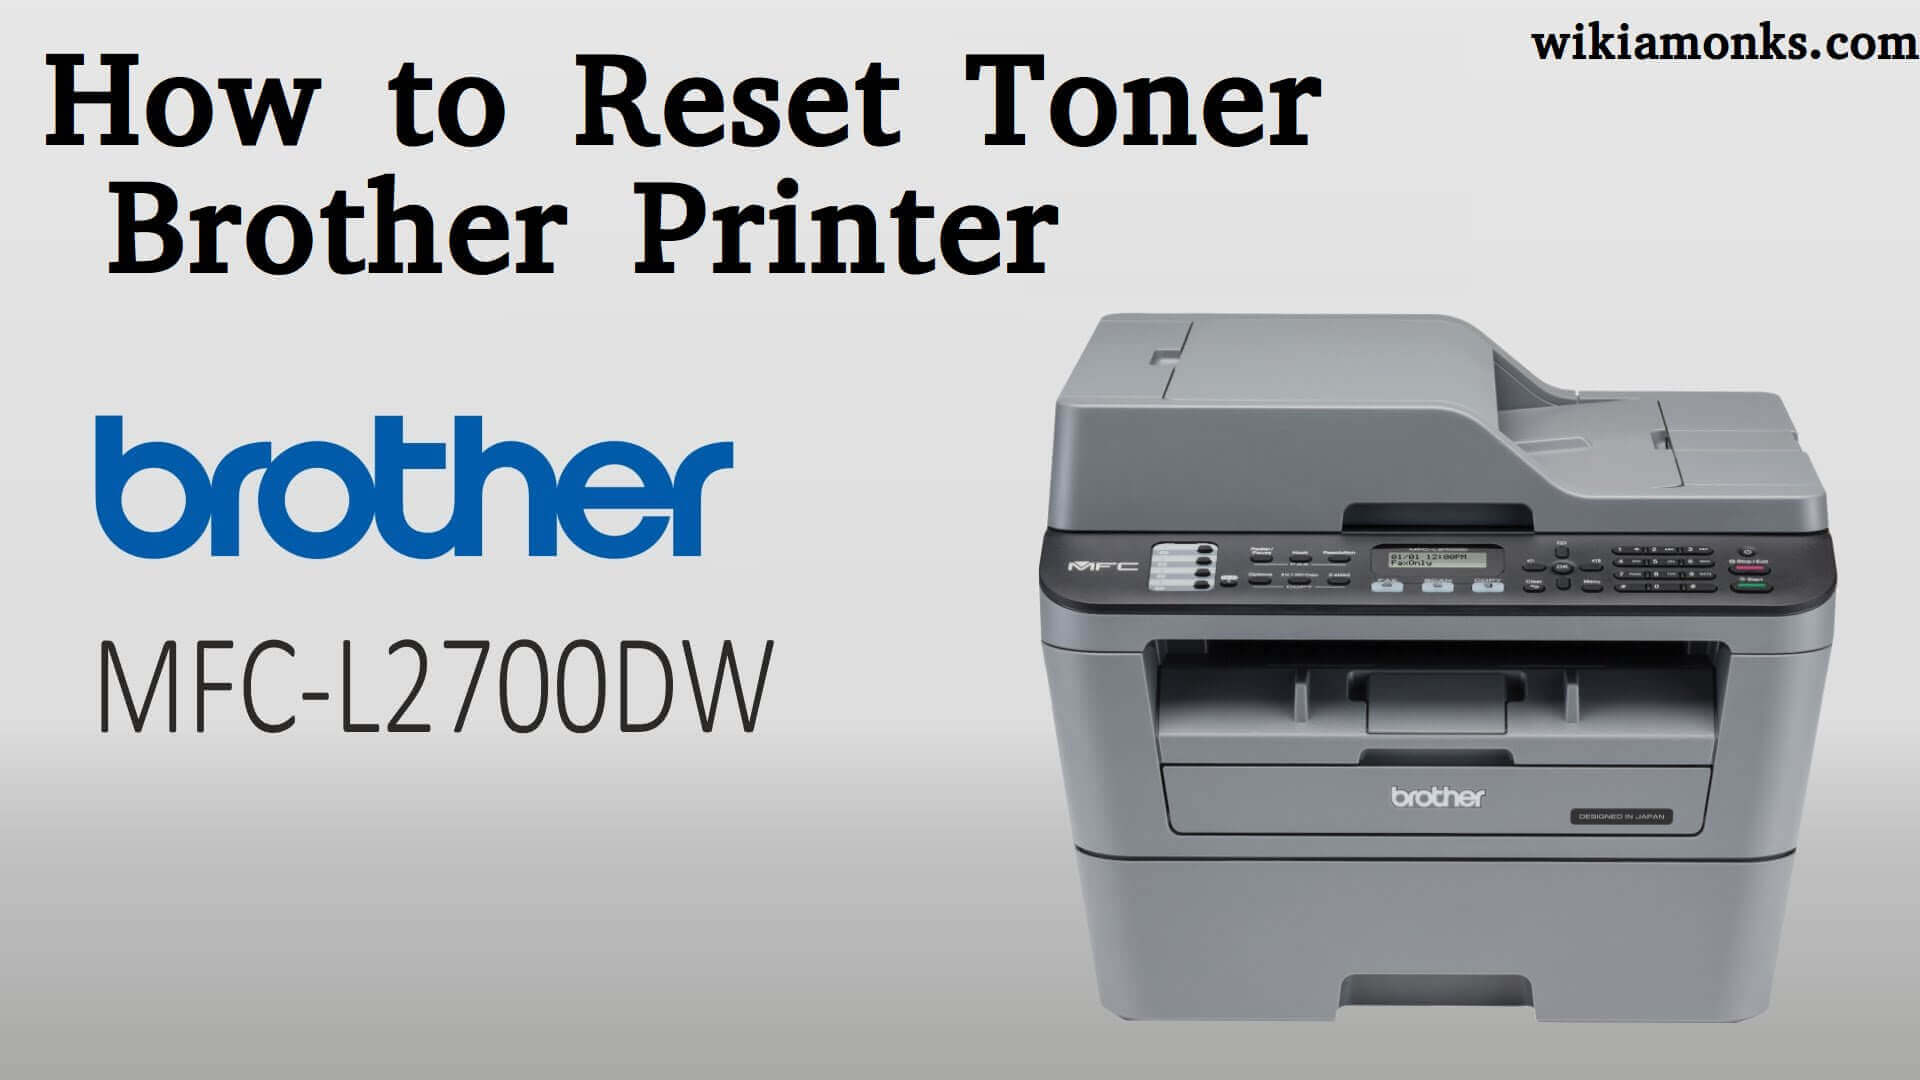 How to Reset Toner Brother Printer MFC L2700DW Model